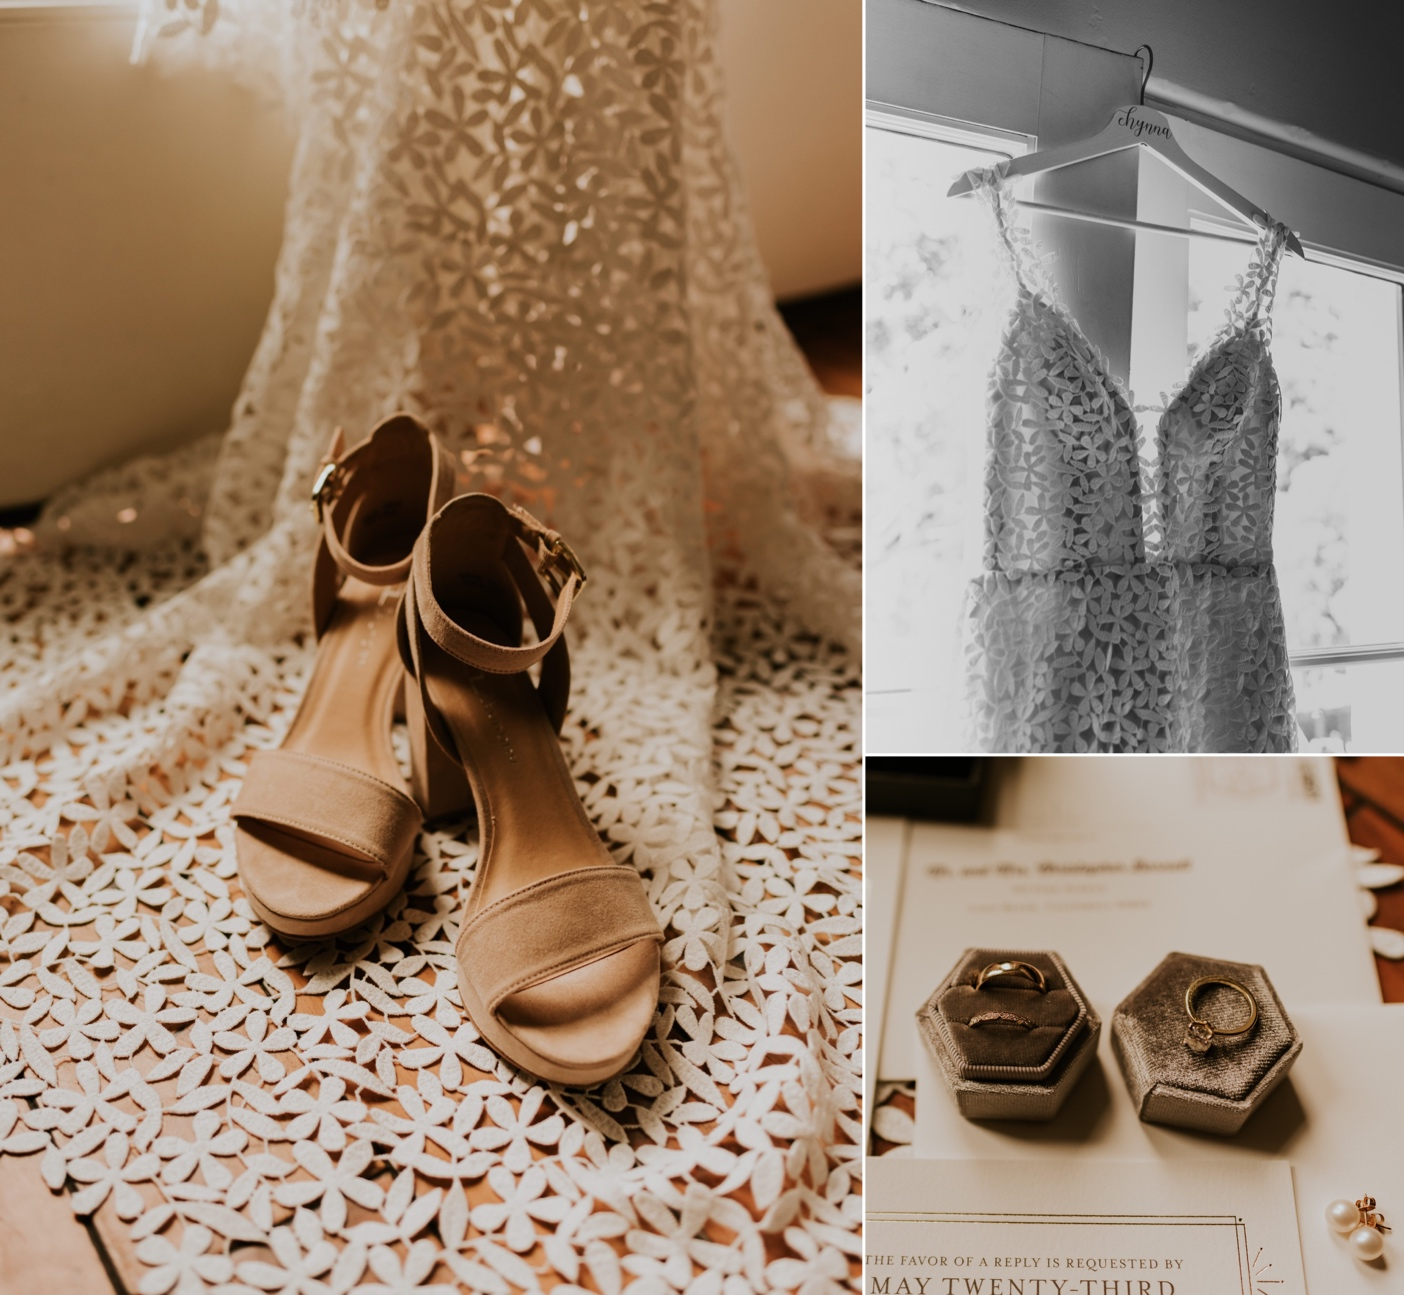 Wedding details. Bride's shoes, invitation suite, and jewelry. Dress hanging in window. Santa Barbara Wedding Photography